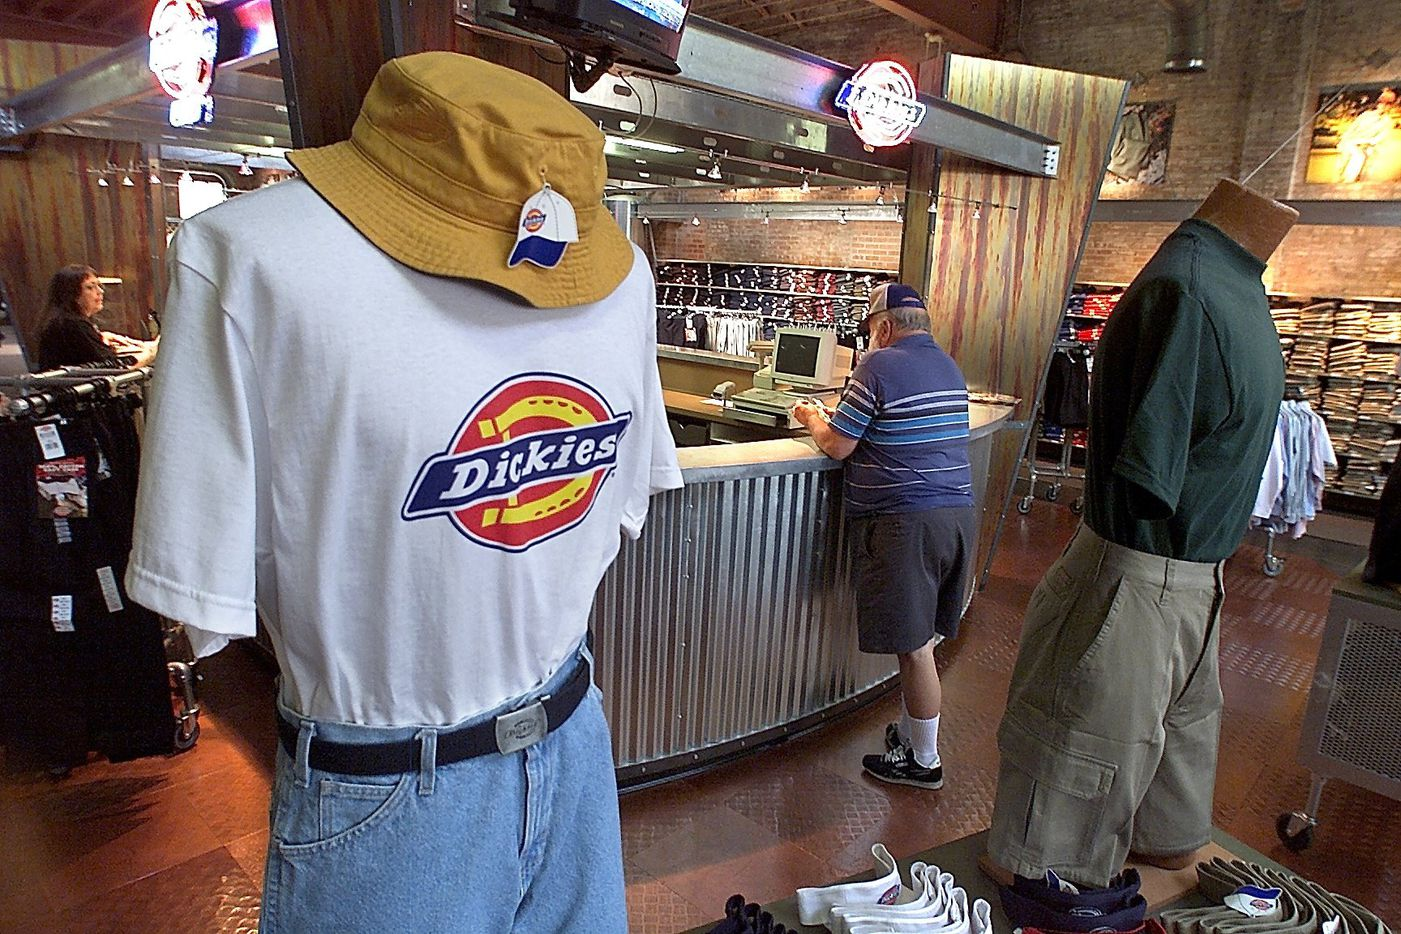 The Williamson-Dickie outlet store in Fort Worth has a newly renovated look on Thursday July 11, 2002.